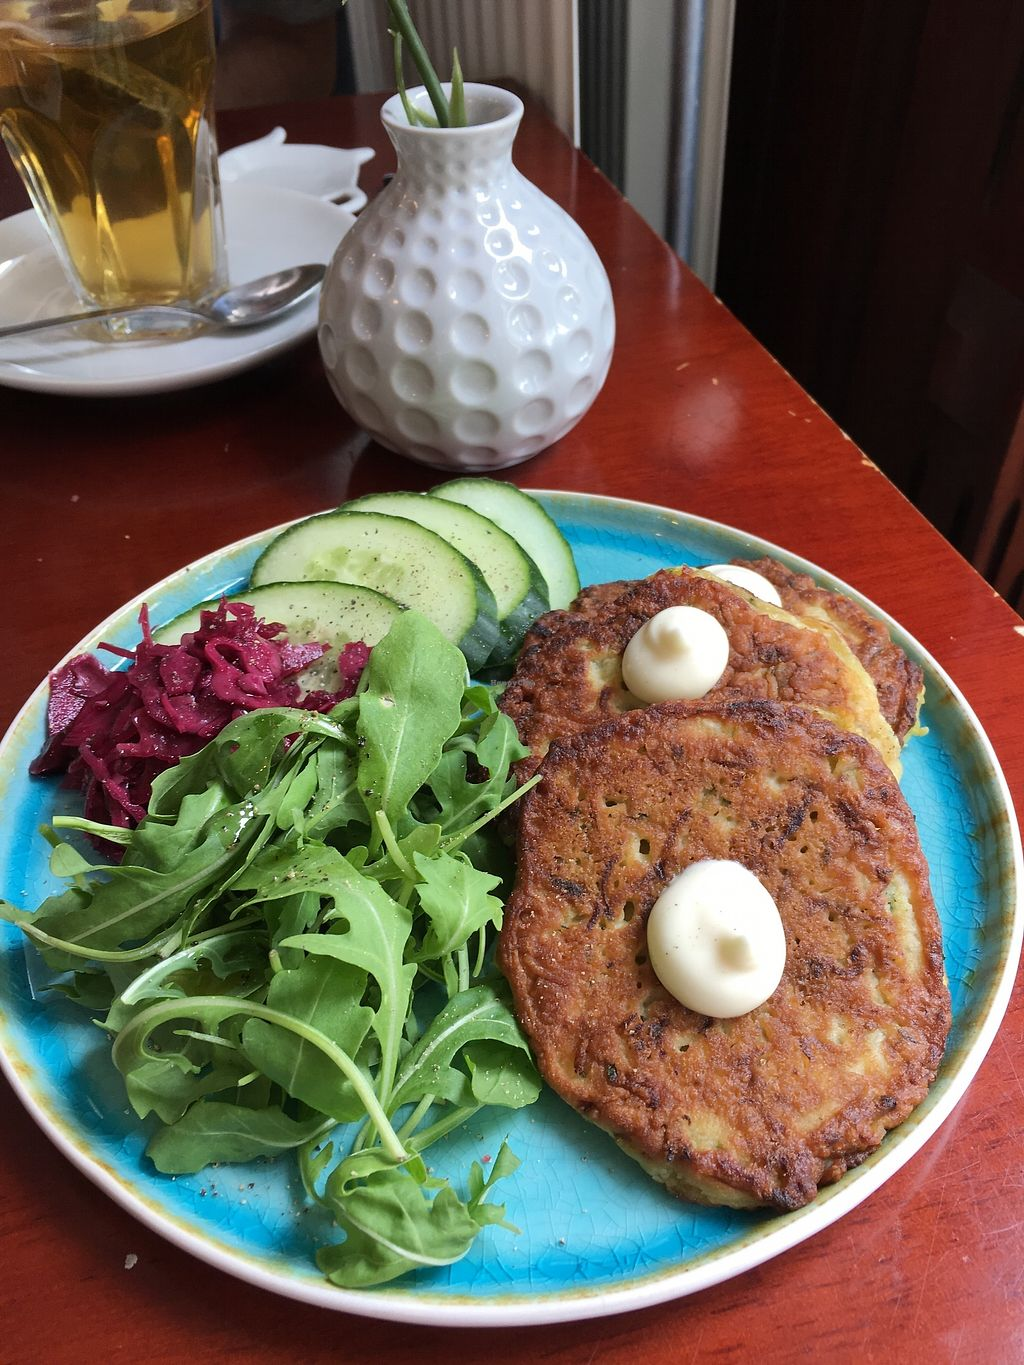 """Photo of Koffie ende Koeck  by <a href=""""/members/profile/vegan%20frog"""">vegan frog</a> <br/>Glutenfree zucchini pancakes <br/> July 1, 2017  - <a href='/contact/abuse/image/46128/275694'>Report</a>"""